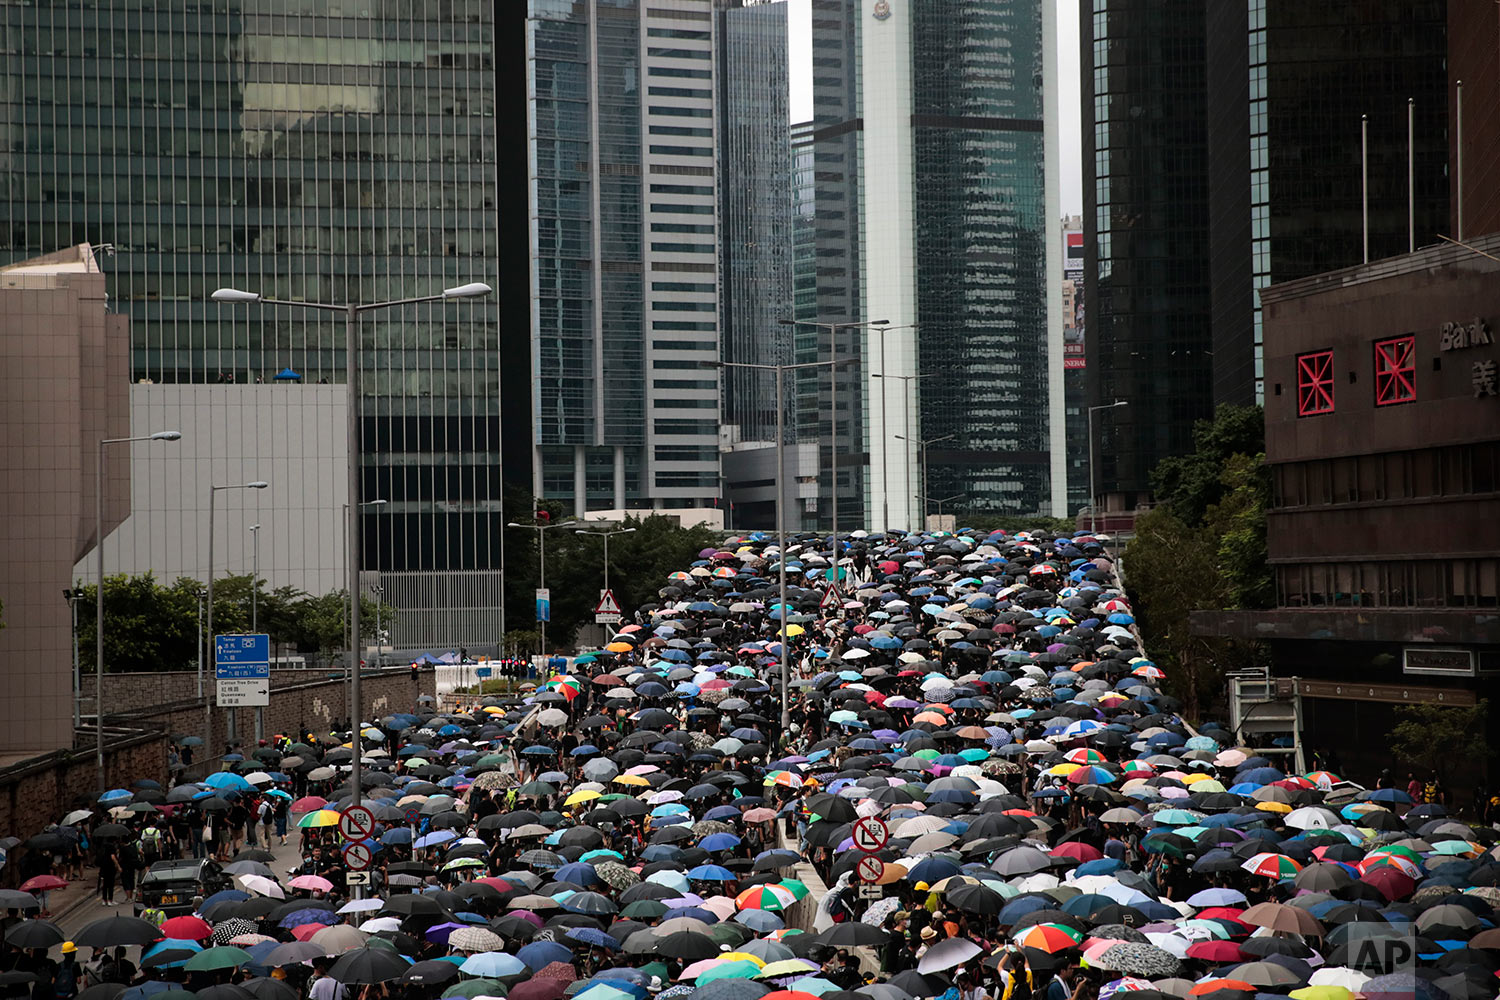 Pro-democracy protesters march in central Hong Kong, Aug. 31, 2019. (AP Photo/Jae C. Hong)